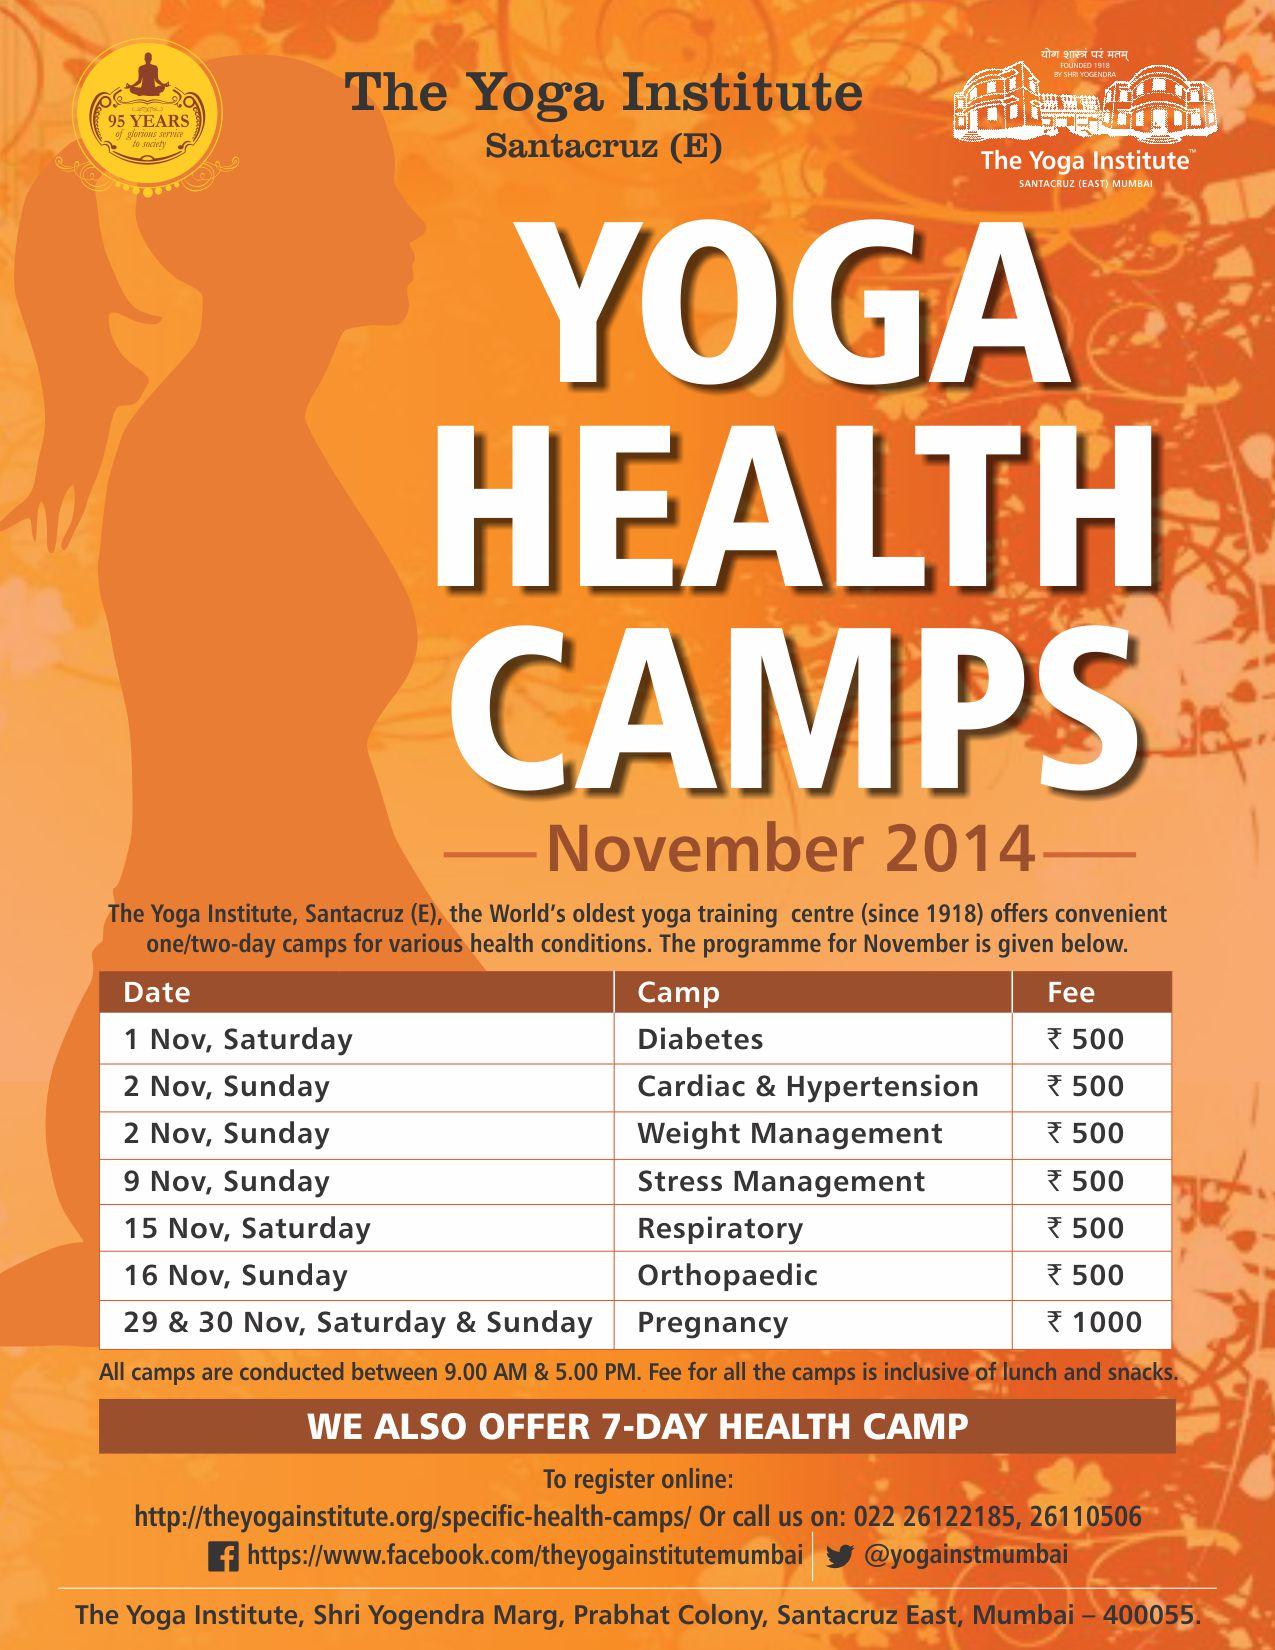 Book Online Tickets for Detox With Yoga Health Camps This Autumn, Mumbai. Pledge to good health this autumn and experience the magic of the ancient science of yoga. Let the pranic energy heal your mind, body and soul. Visit The Yoga Institute, Santacruz (E), this November for Yoga Health Camps designed to prevent, manage a